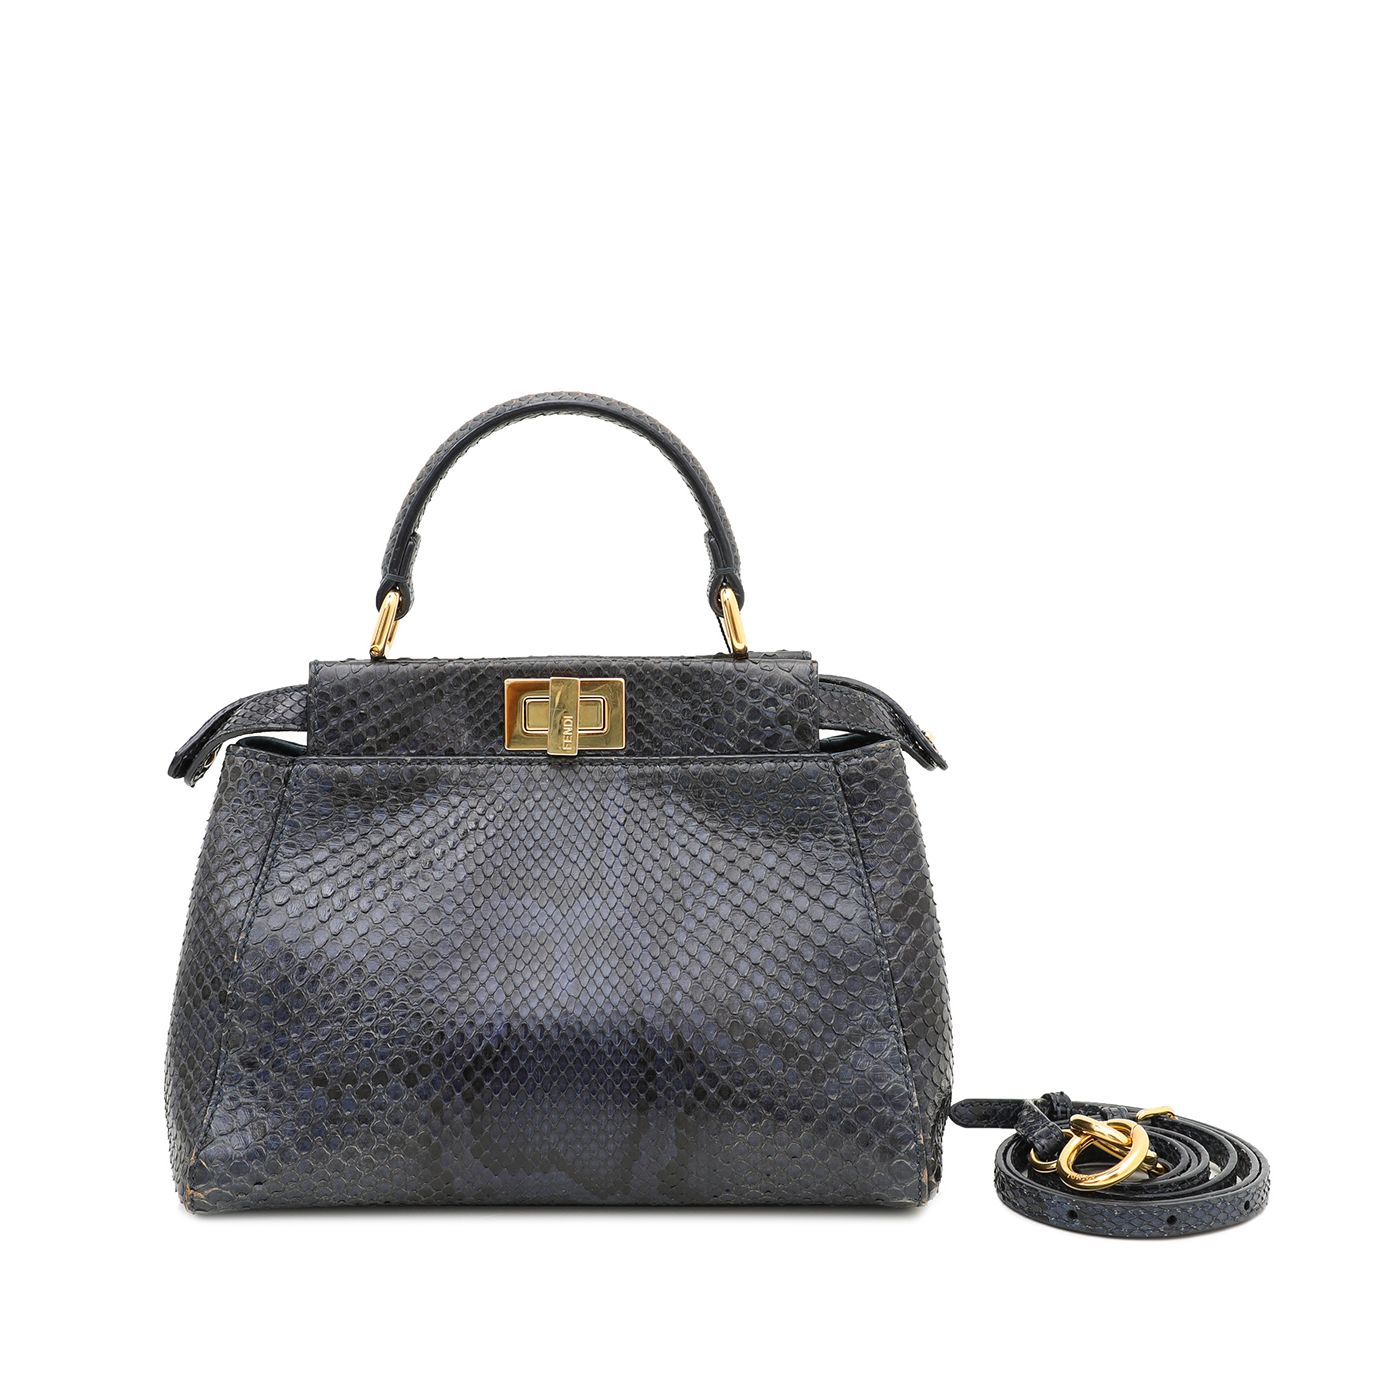 Fendi Blue Python Peekaboo Mini Bag